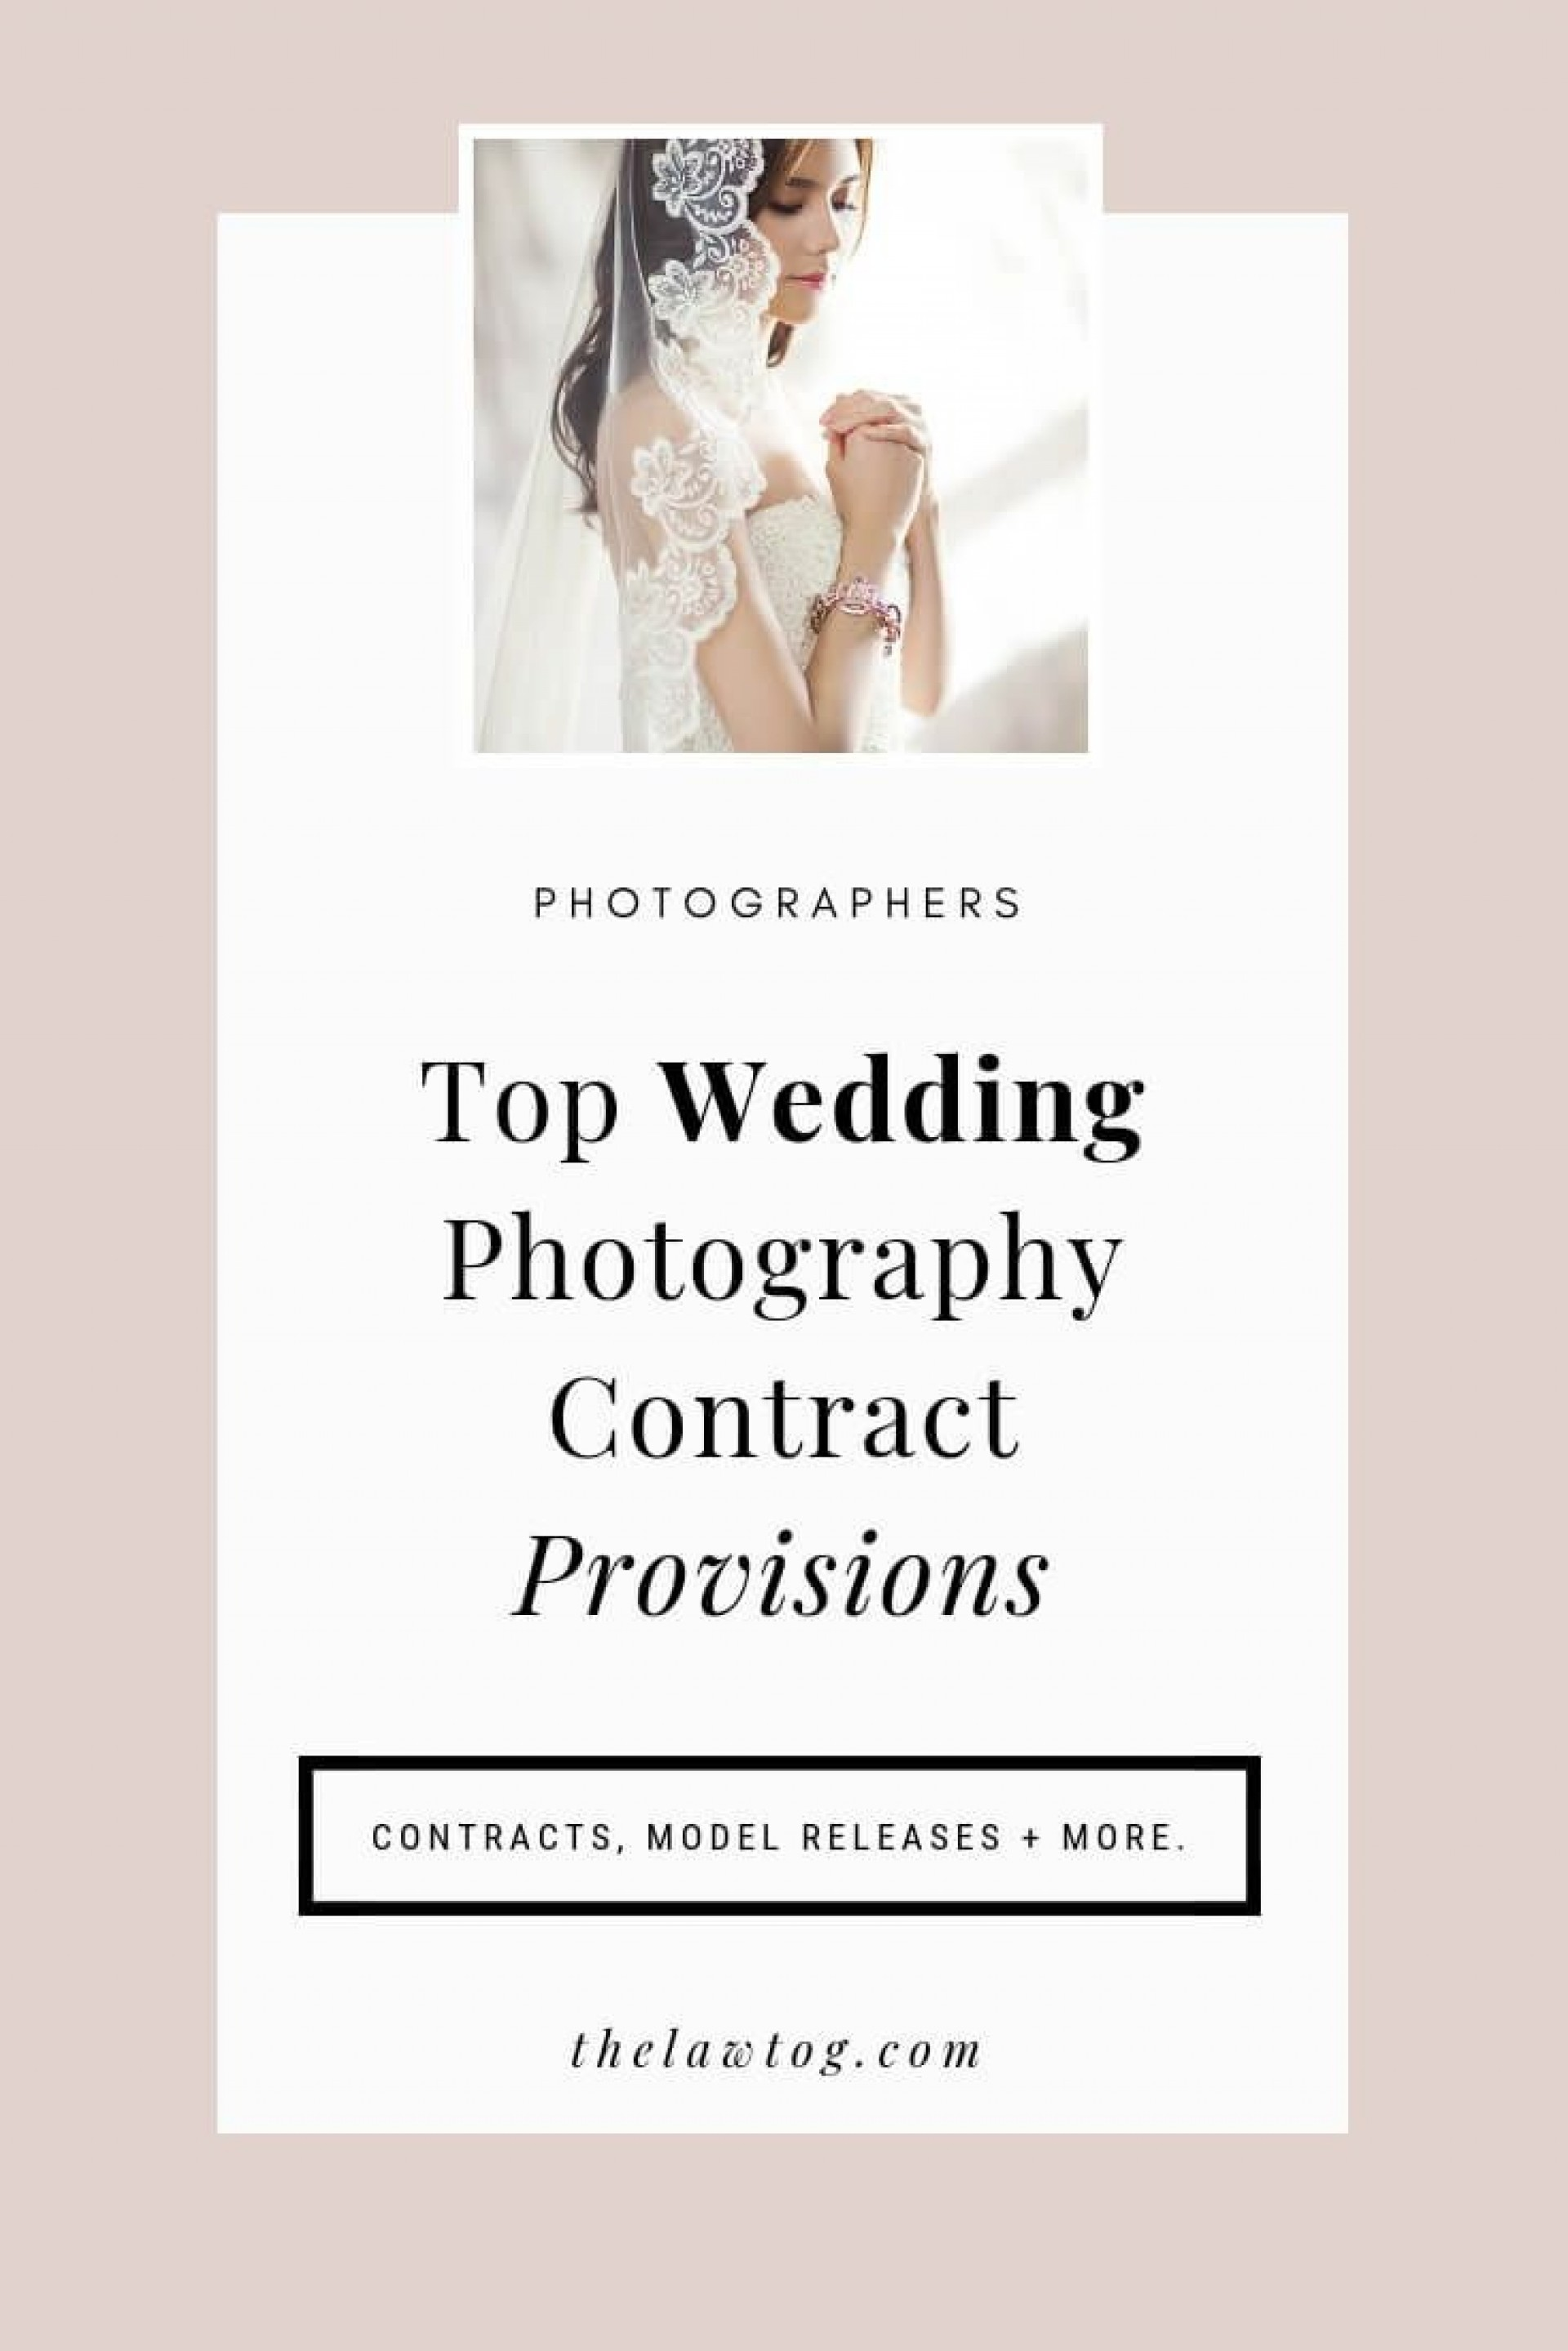 007 Frightening Wedding Photography Contract Template Canada Highest Clarity 1920